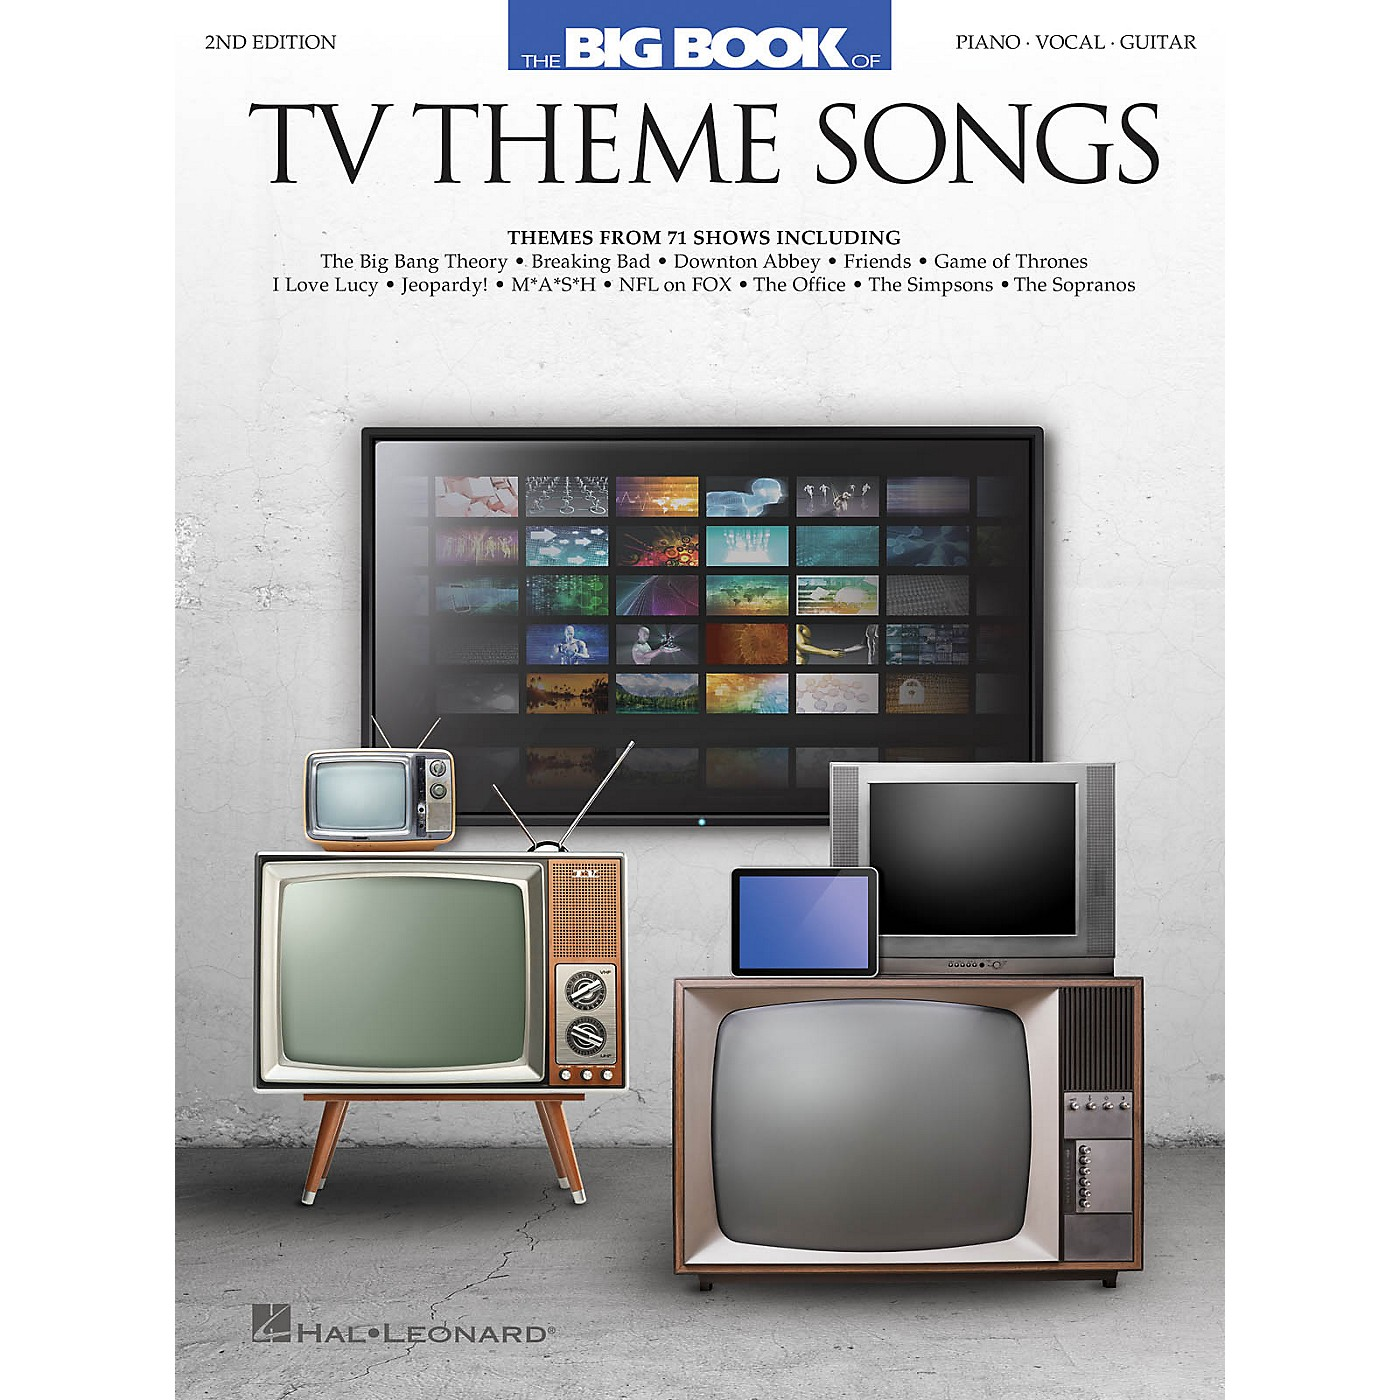 Hal Leonard Big Book of TV Theme Songs - 2nd Edition Piano/Vocal/Guitar Songbook thumbnail